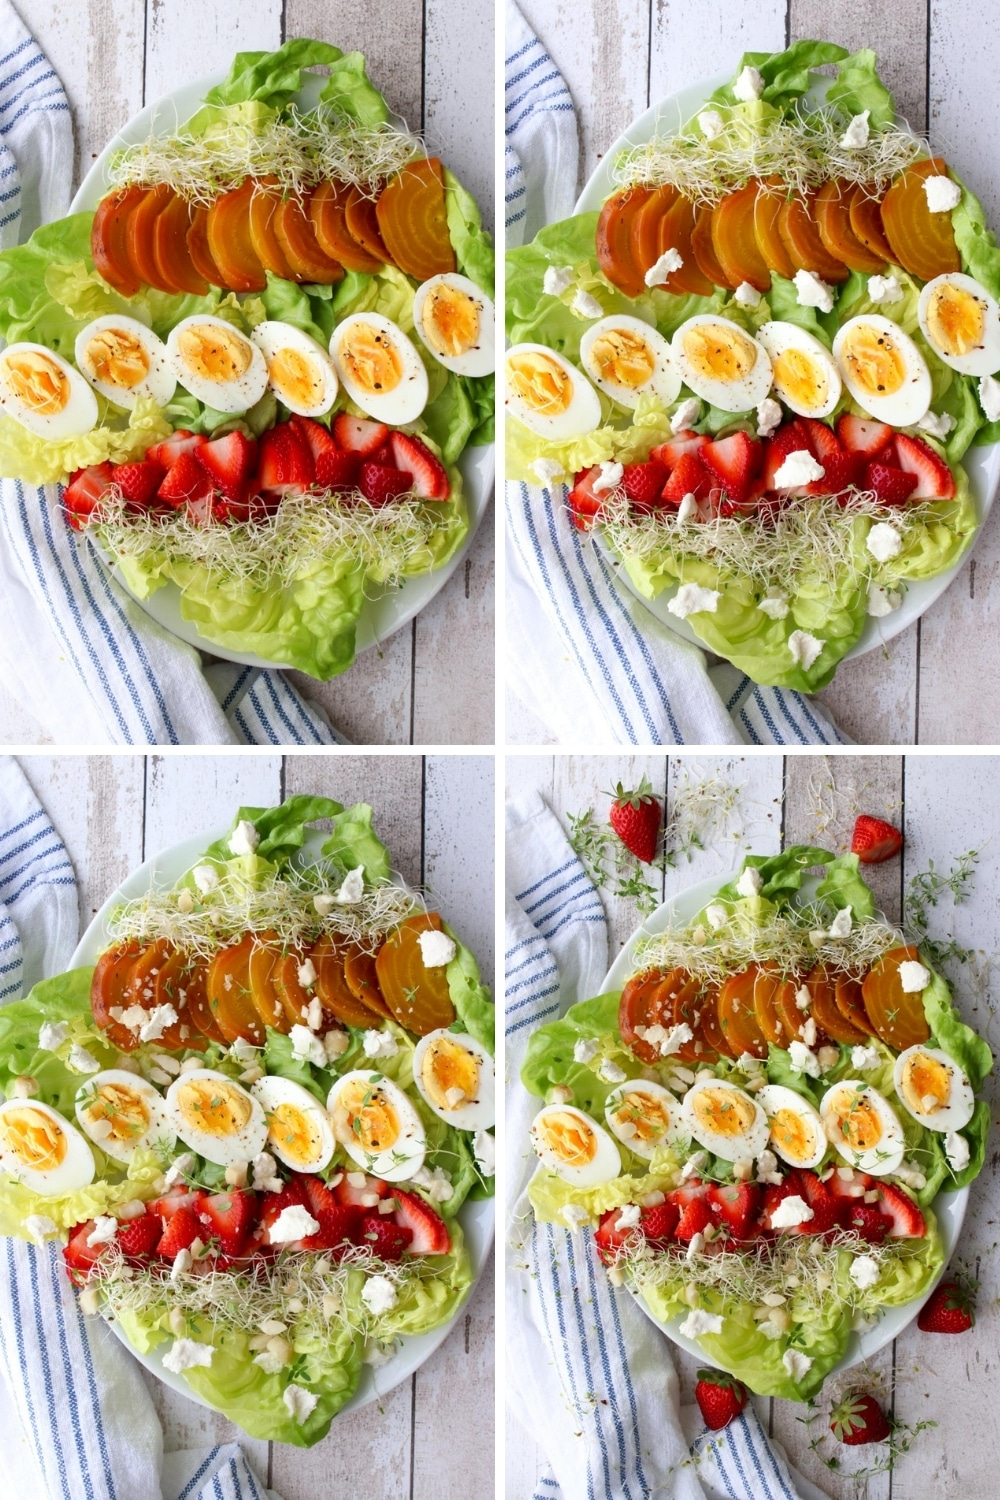 collage showing how to assemble the salad